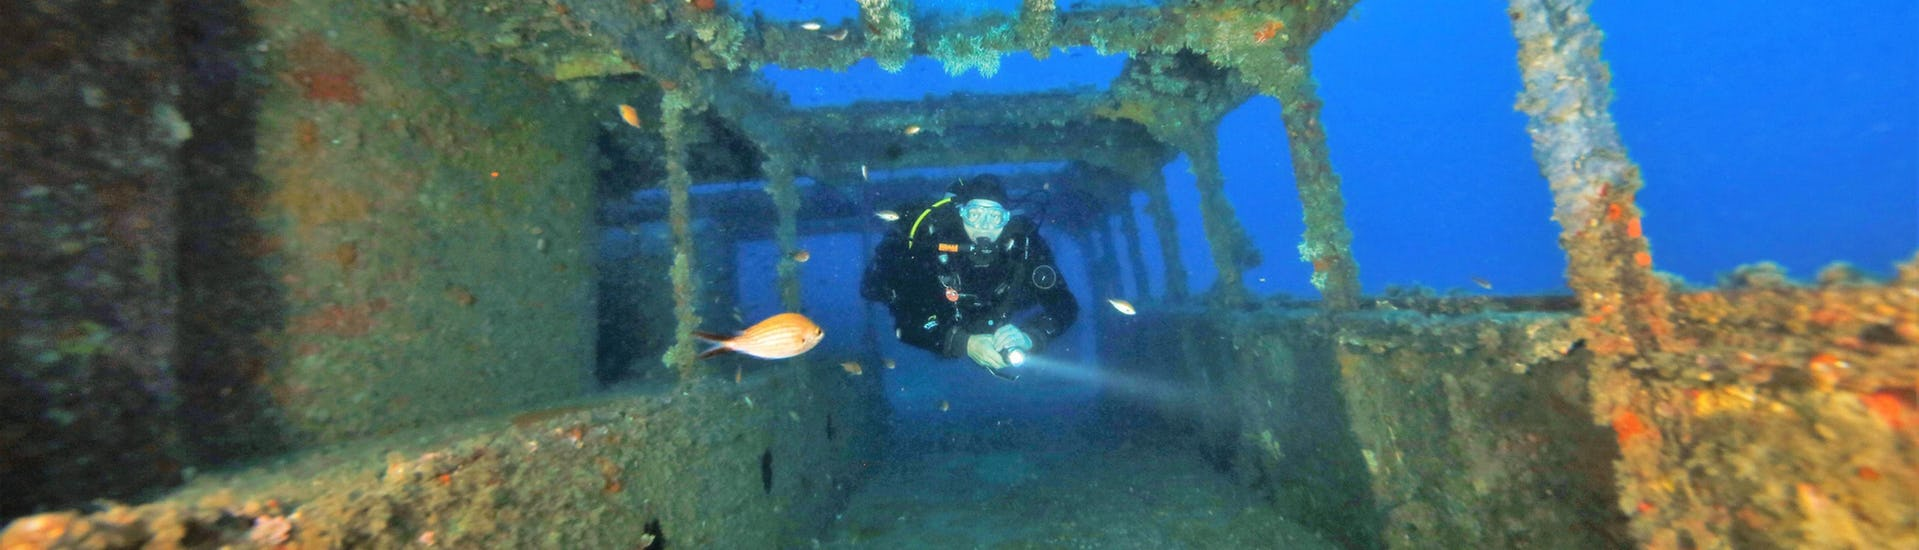 A diver is exploring a shipwreck in Malta during one of the Guided Boat & Shore Dives from Saint Paul's Bay with Octopus Garden.